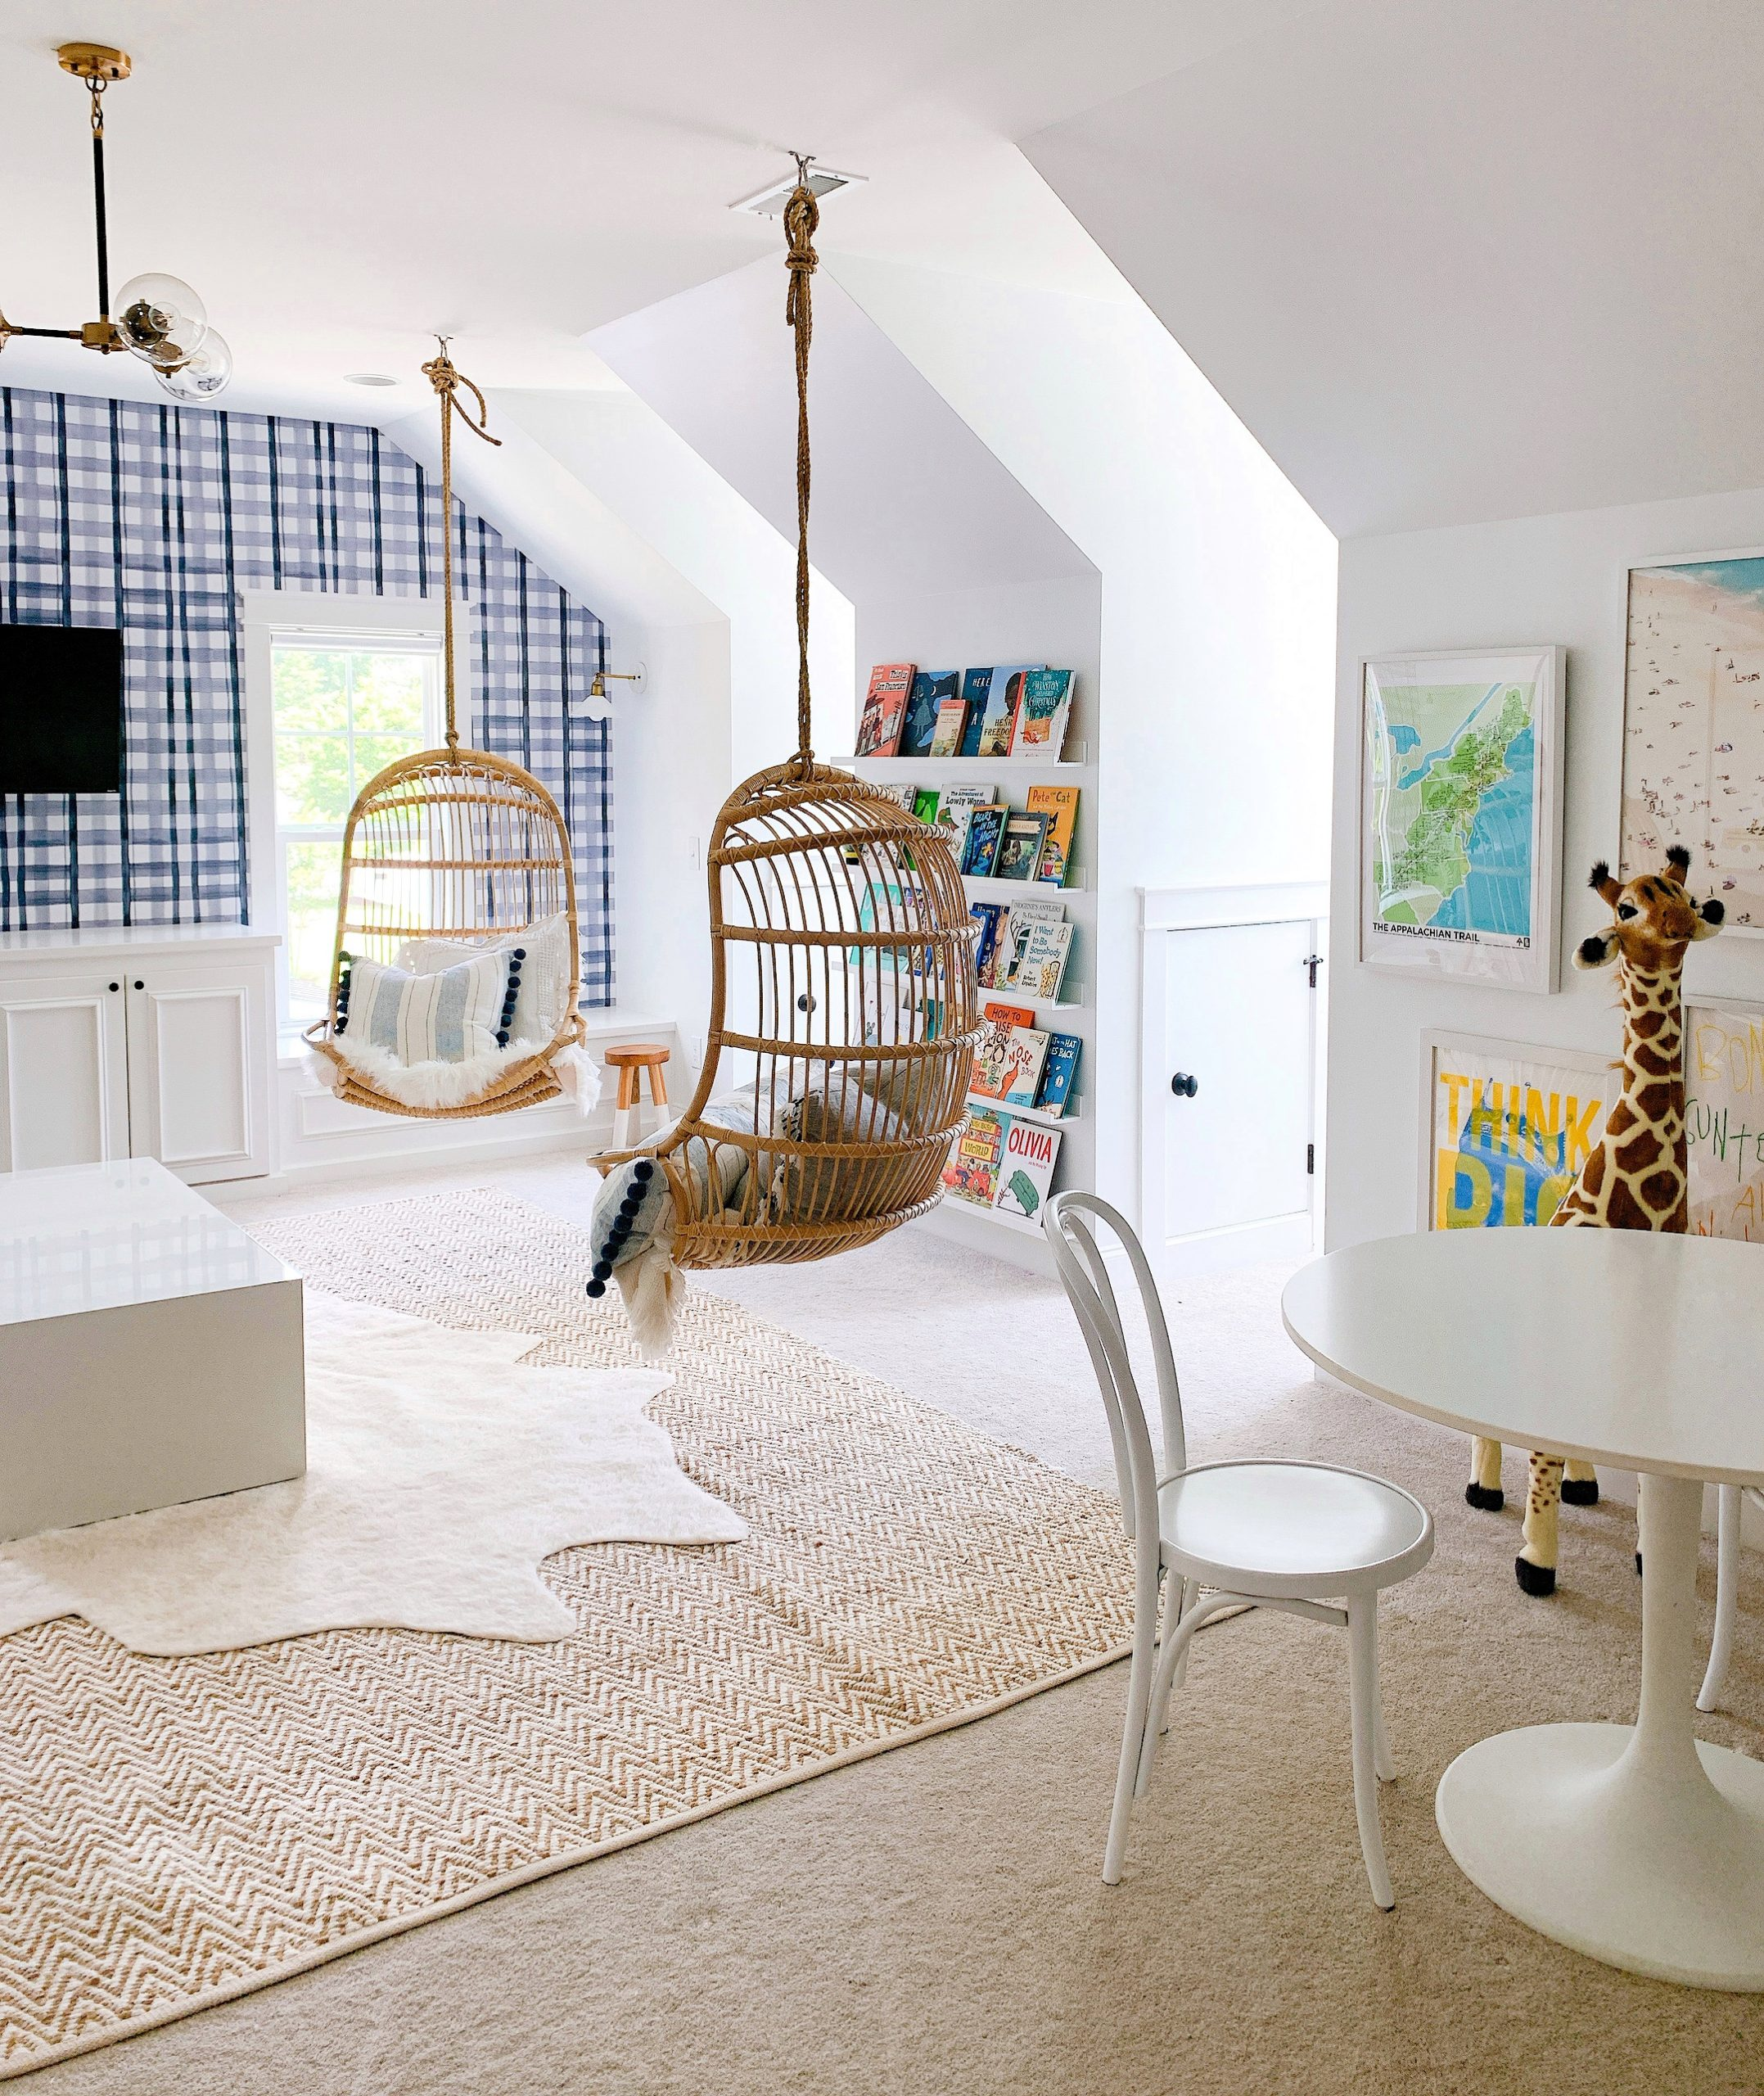 two hanging rattan chairs in a playroom